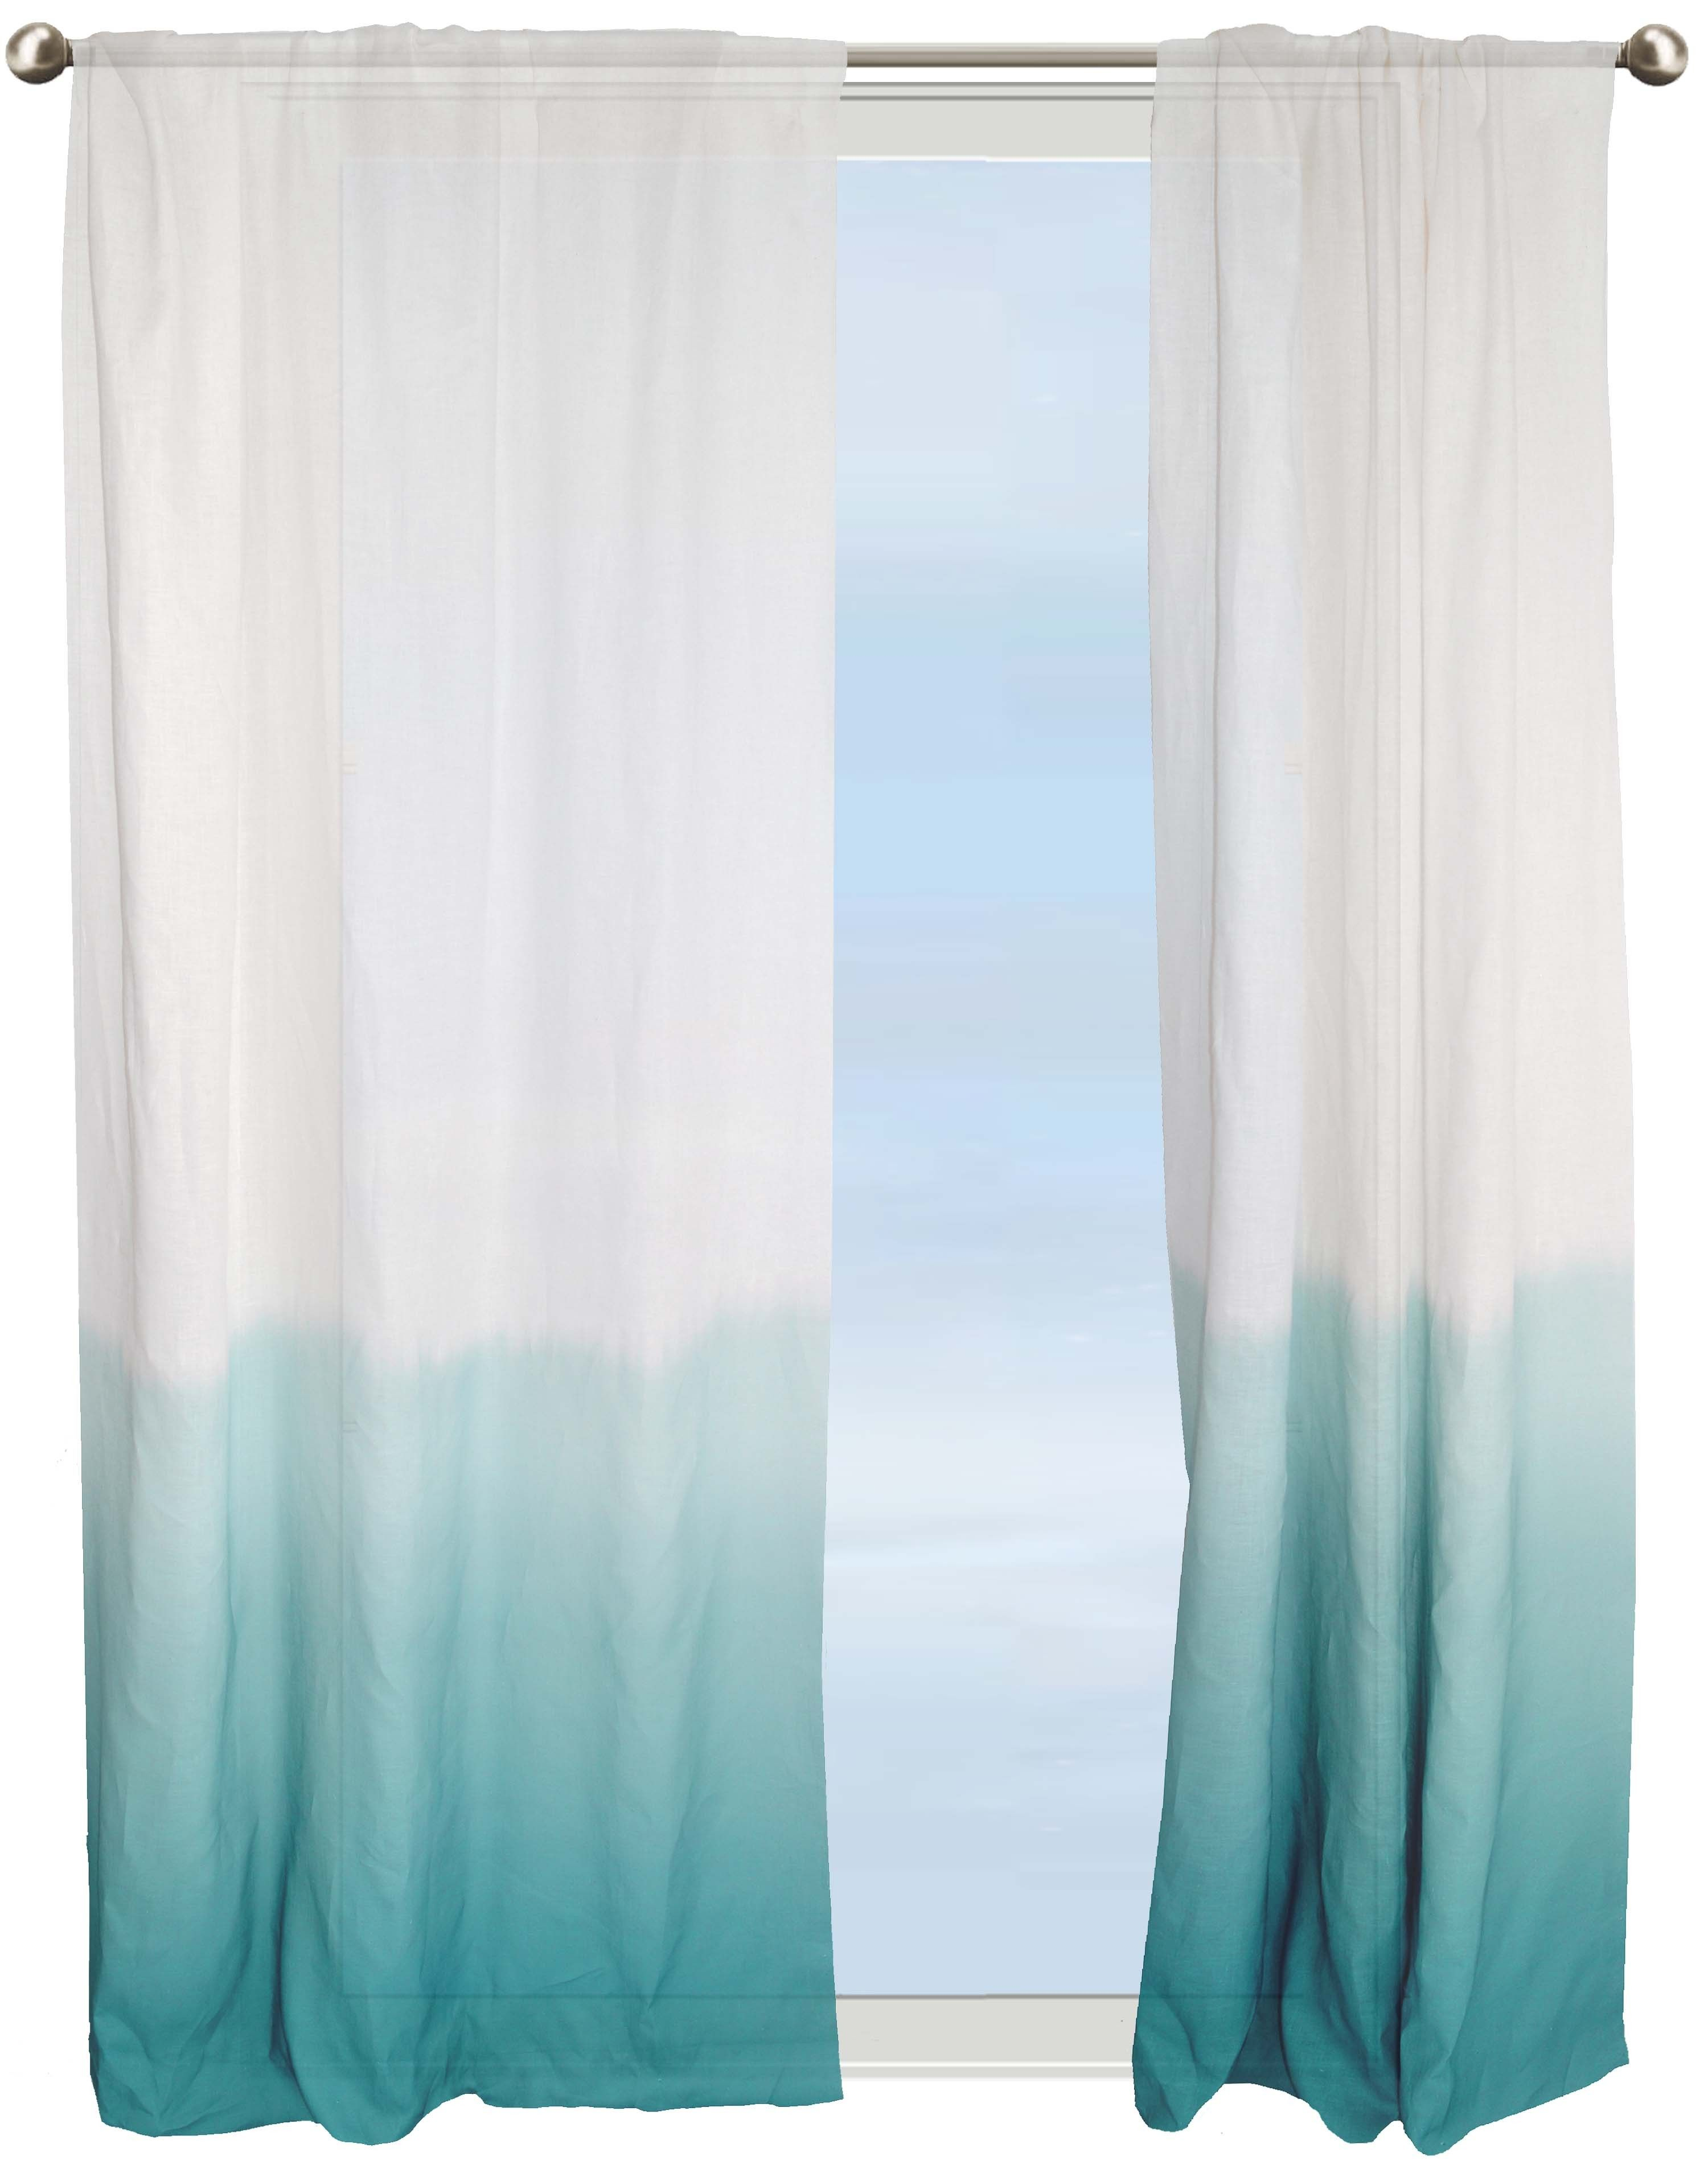 ash blue inch chelsea curtains eclipse panel p window filtering picture curtain light uv sheer of